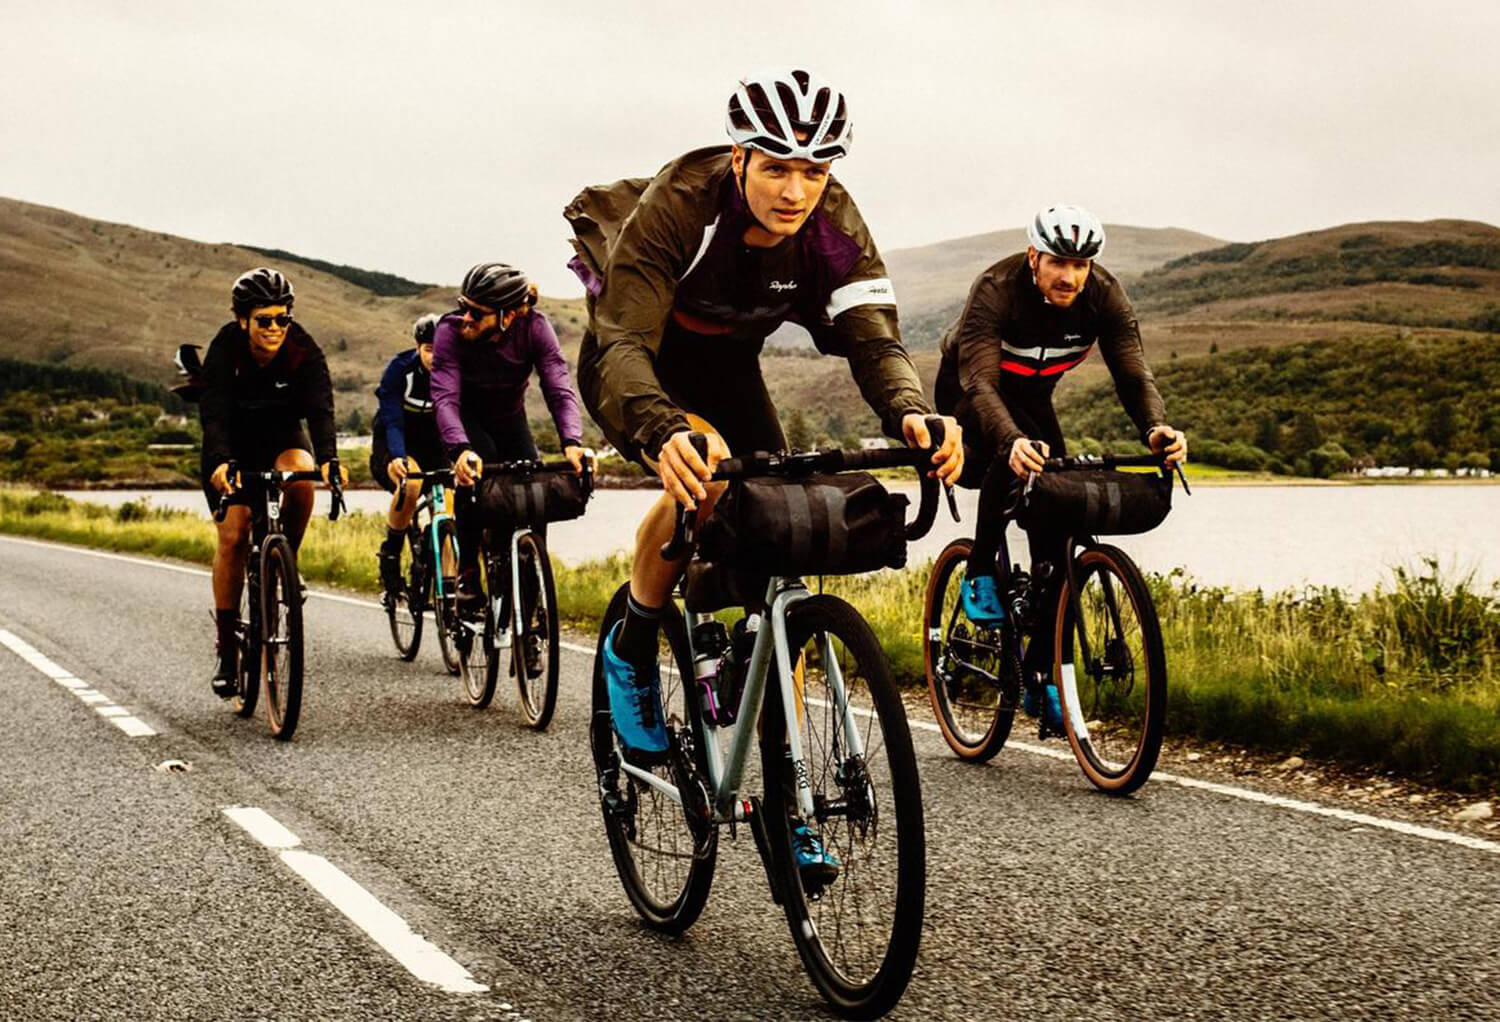 Rapha Cycling Clothing - Contender Bicycles